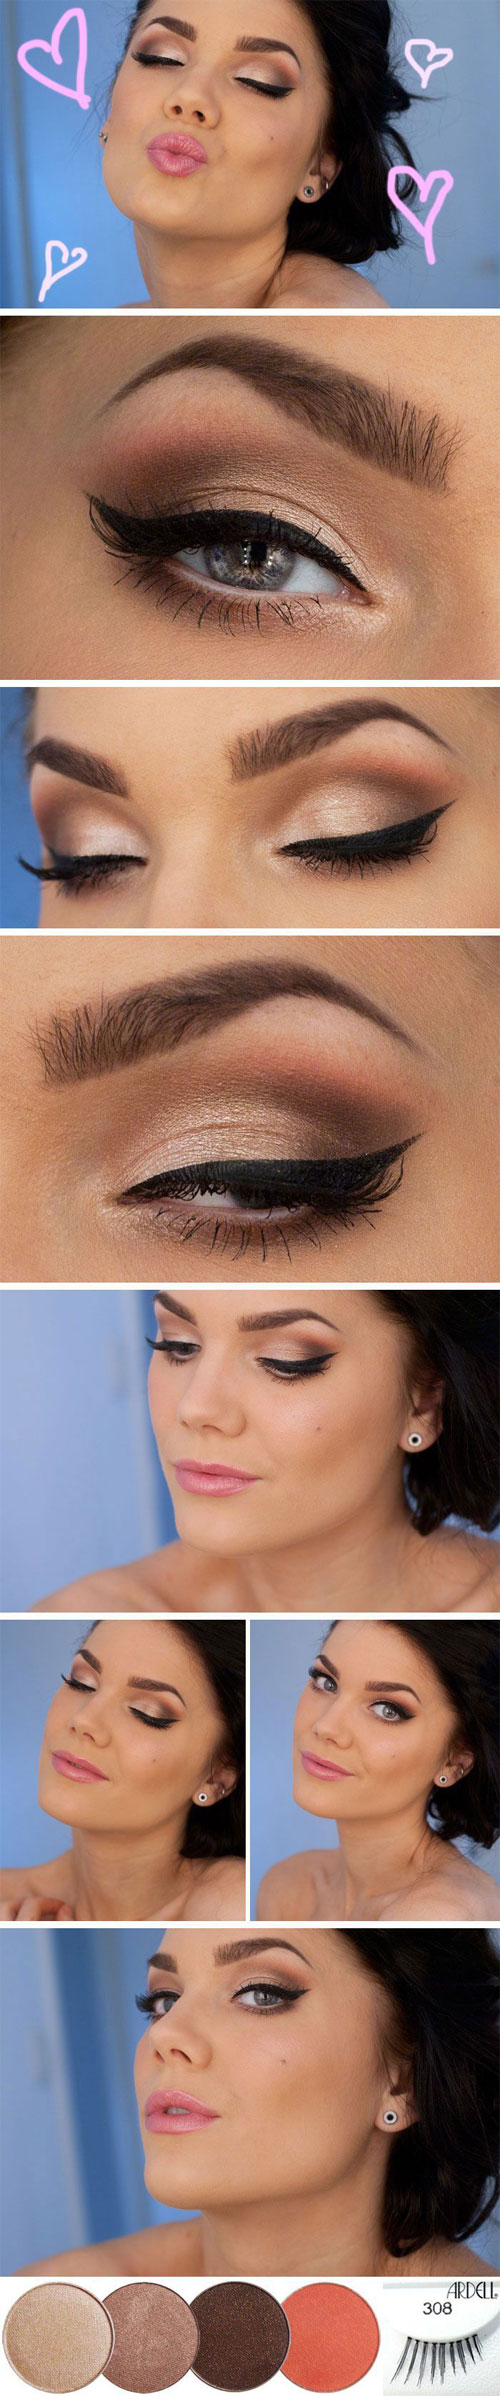 20-Valentine's-Day-Face-Makeup-Ideas-Looks-Trends-2016-17